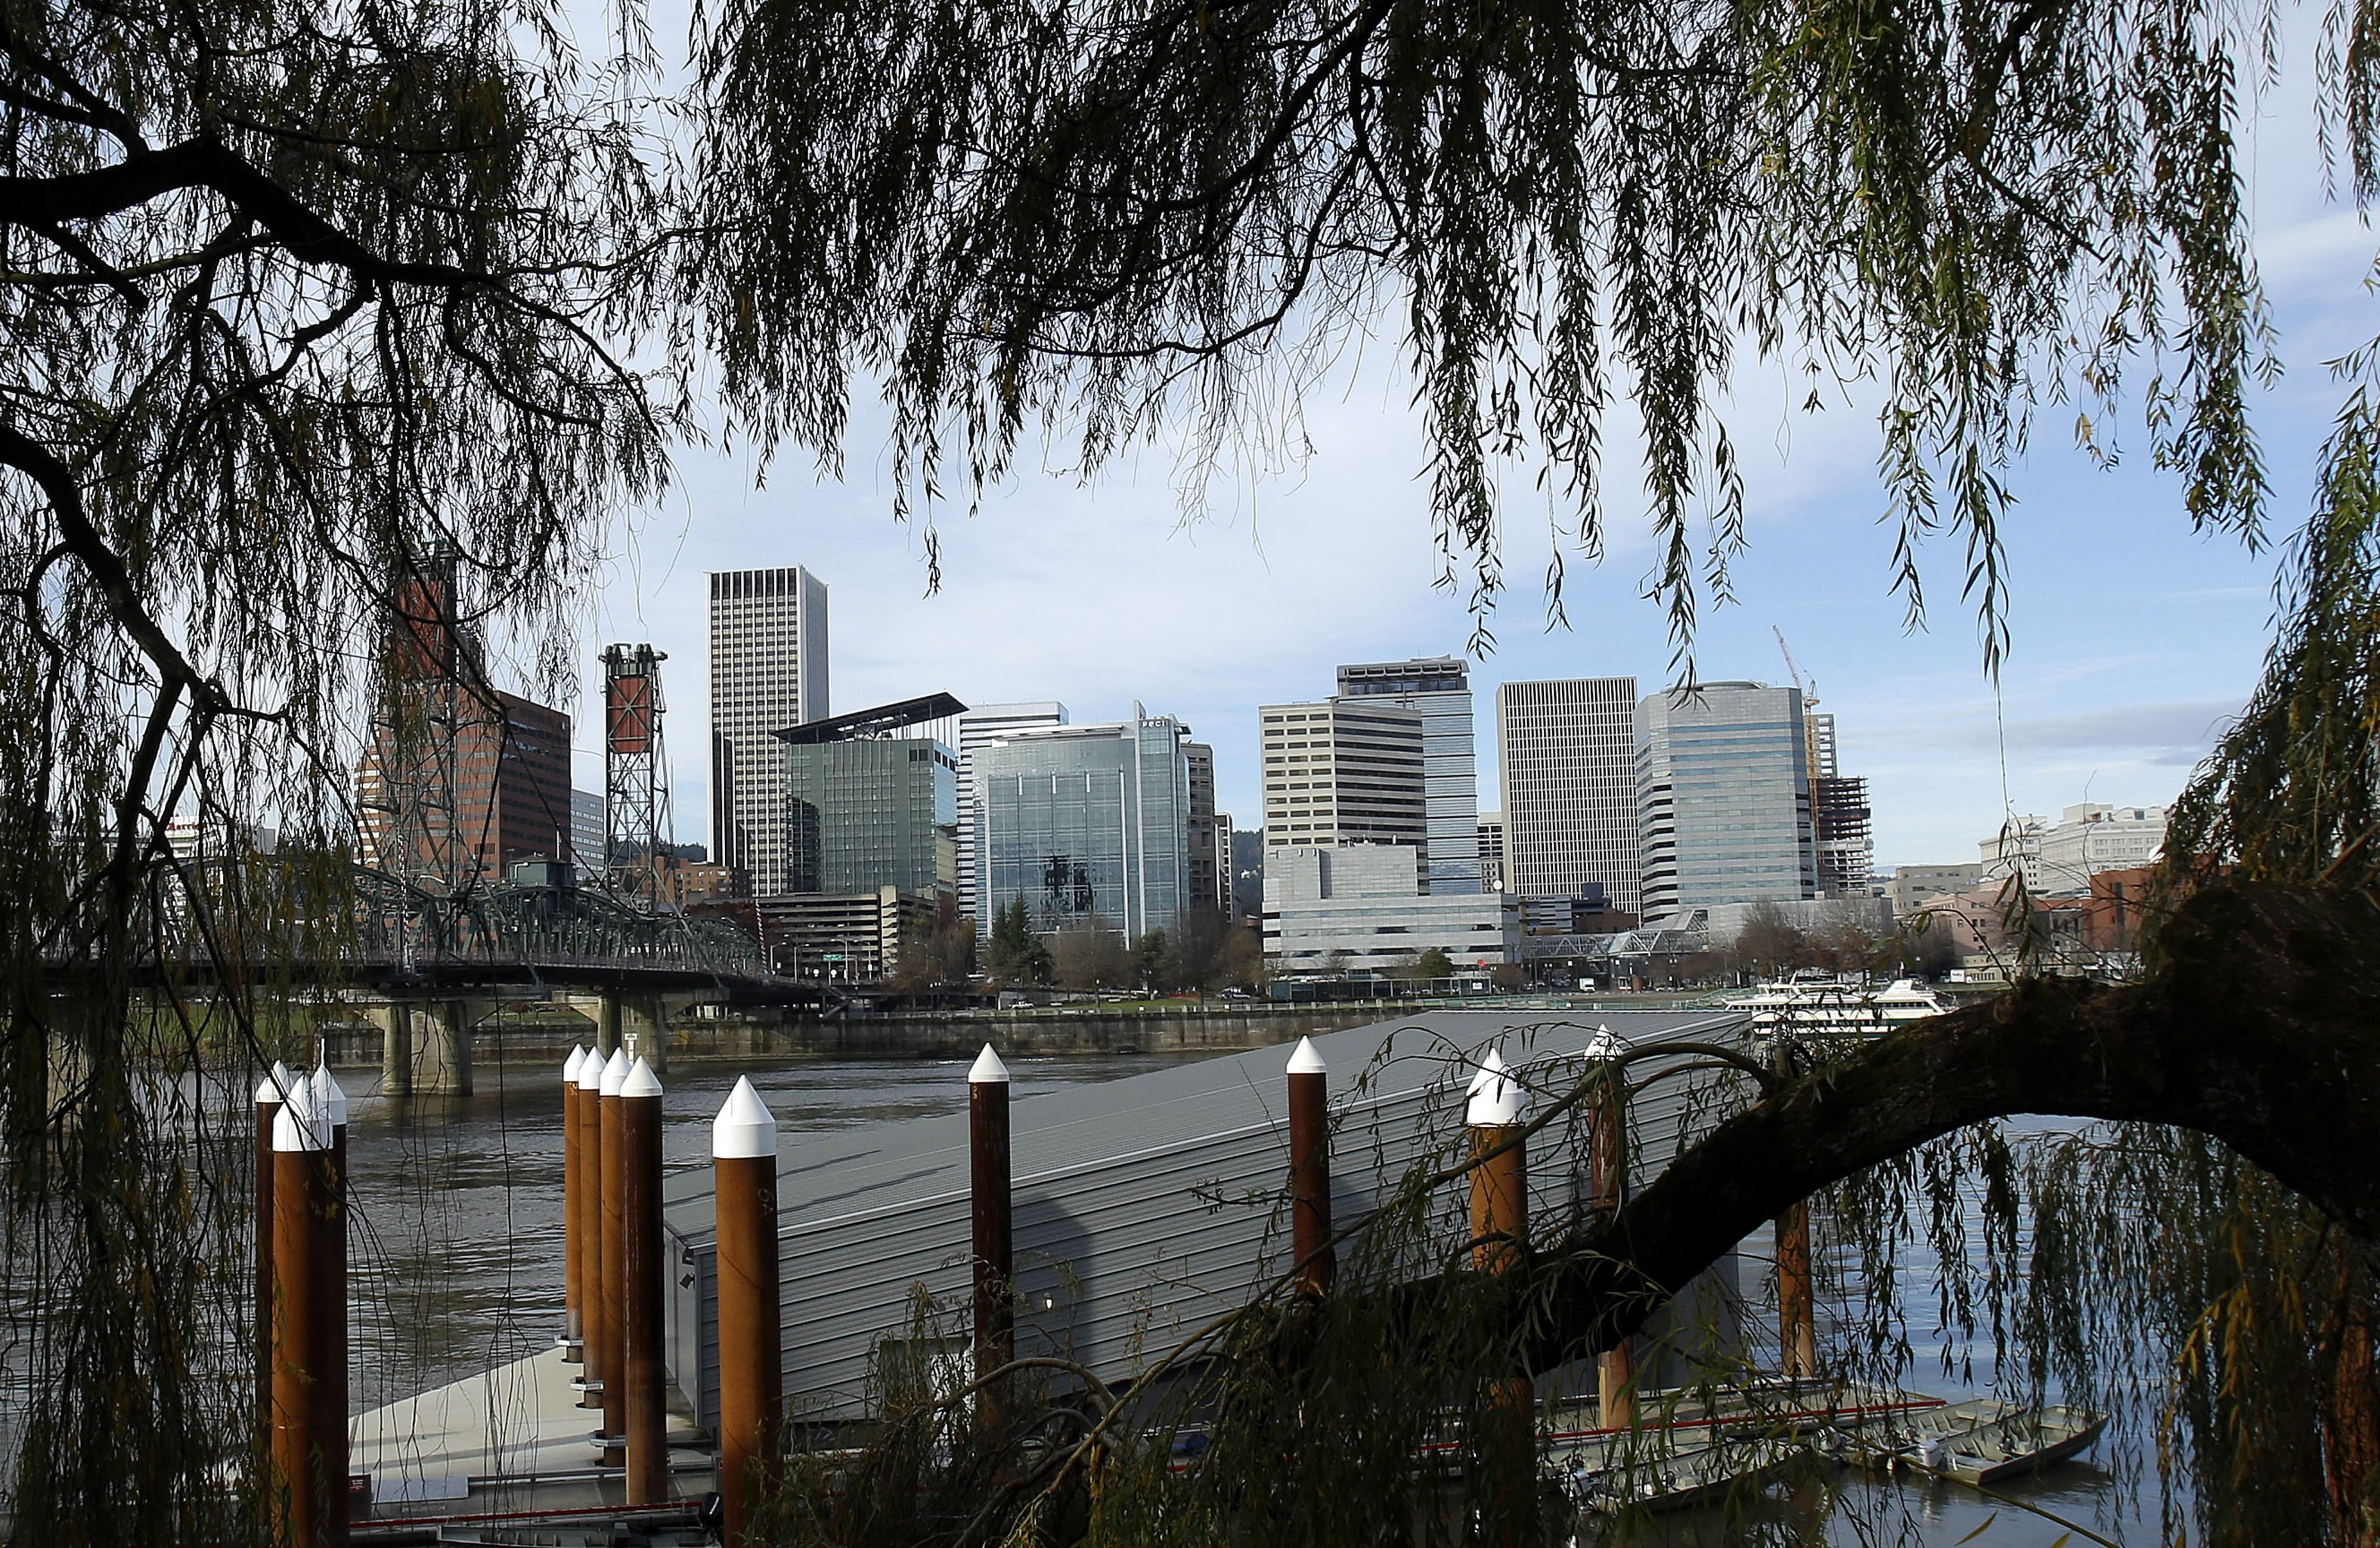 The Portland skyline is visible through trees on the east bank of the Willamette River in Portland, Ore., Wednesday, Dec. 3, 2014. The White House is singling out 16 U.S. cities, including Portland, for leading their peers in efforts to address climate change.(AP Photo/Don Ryan)